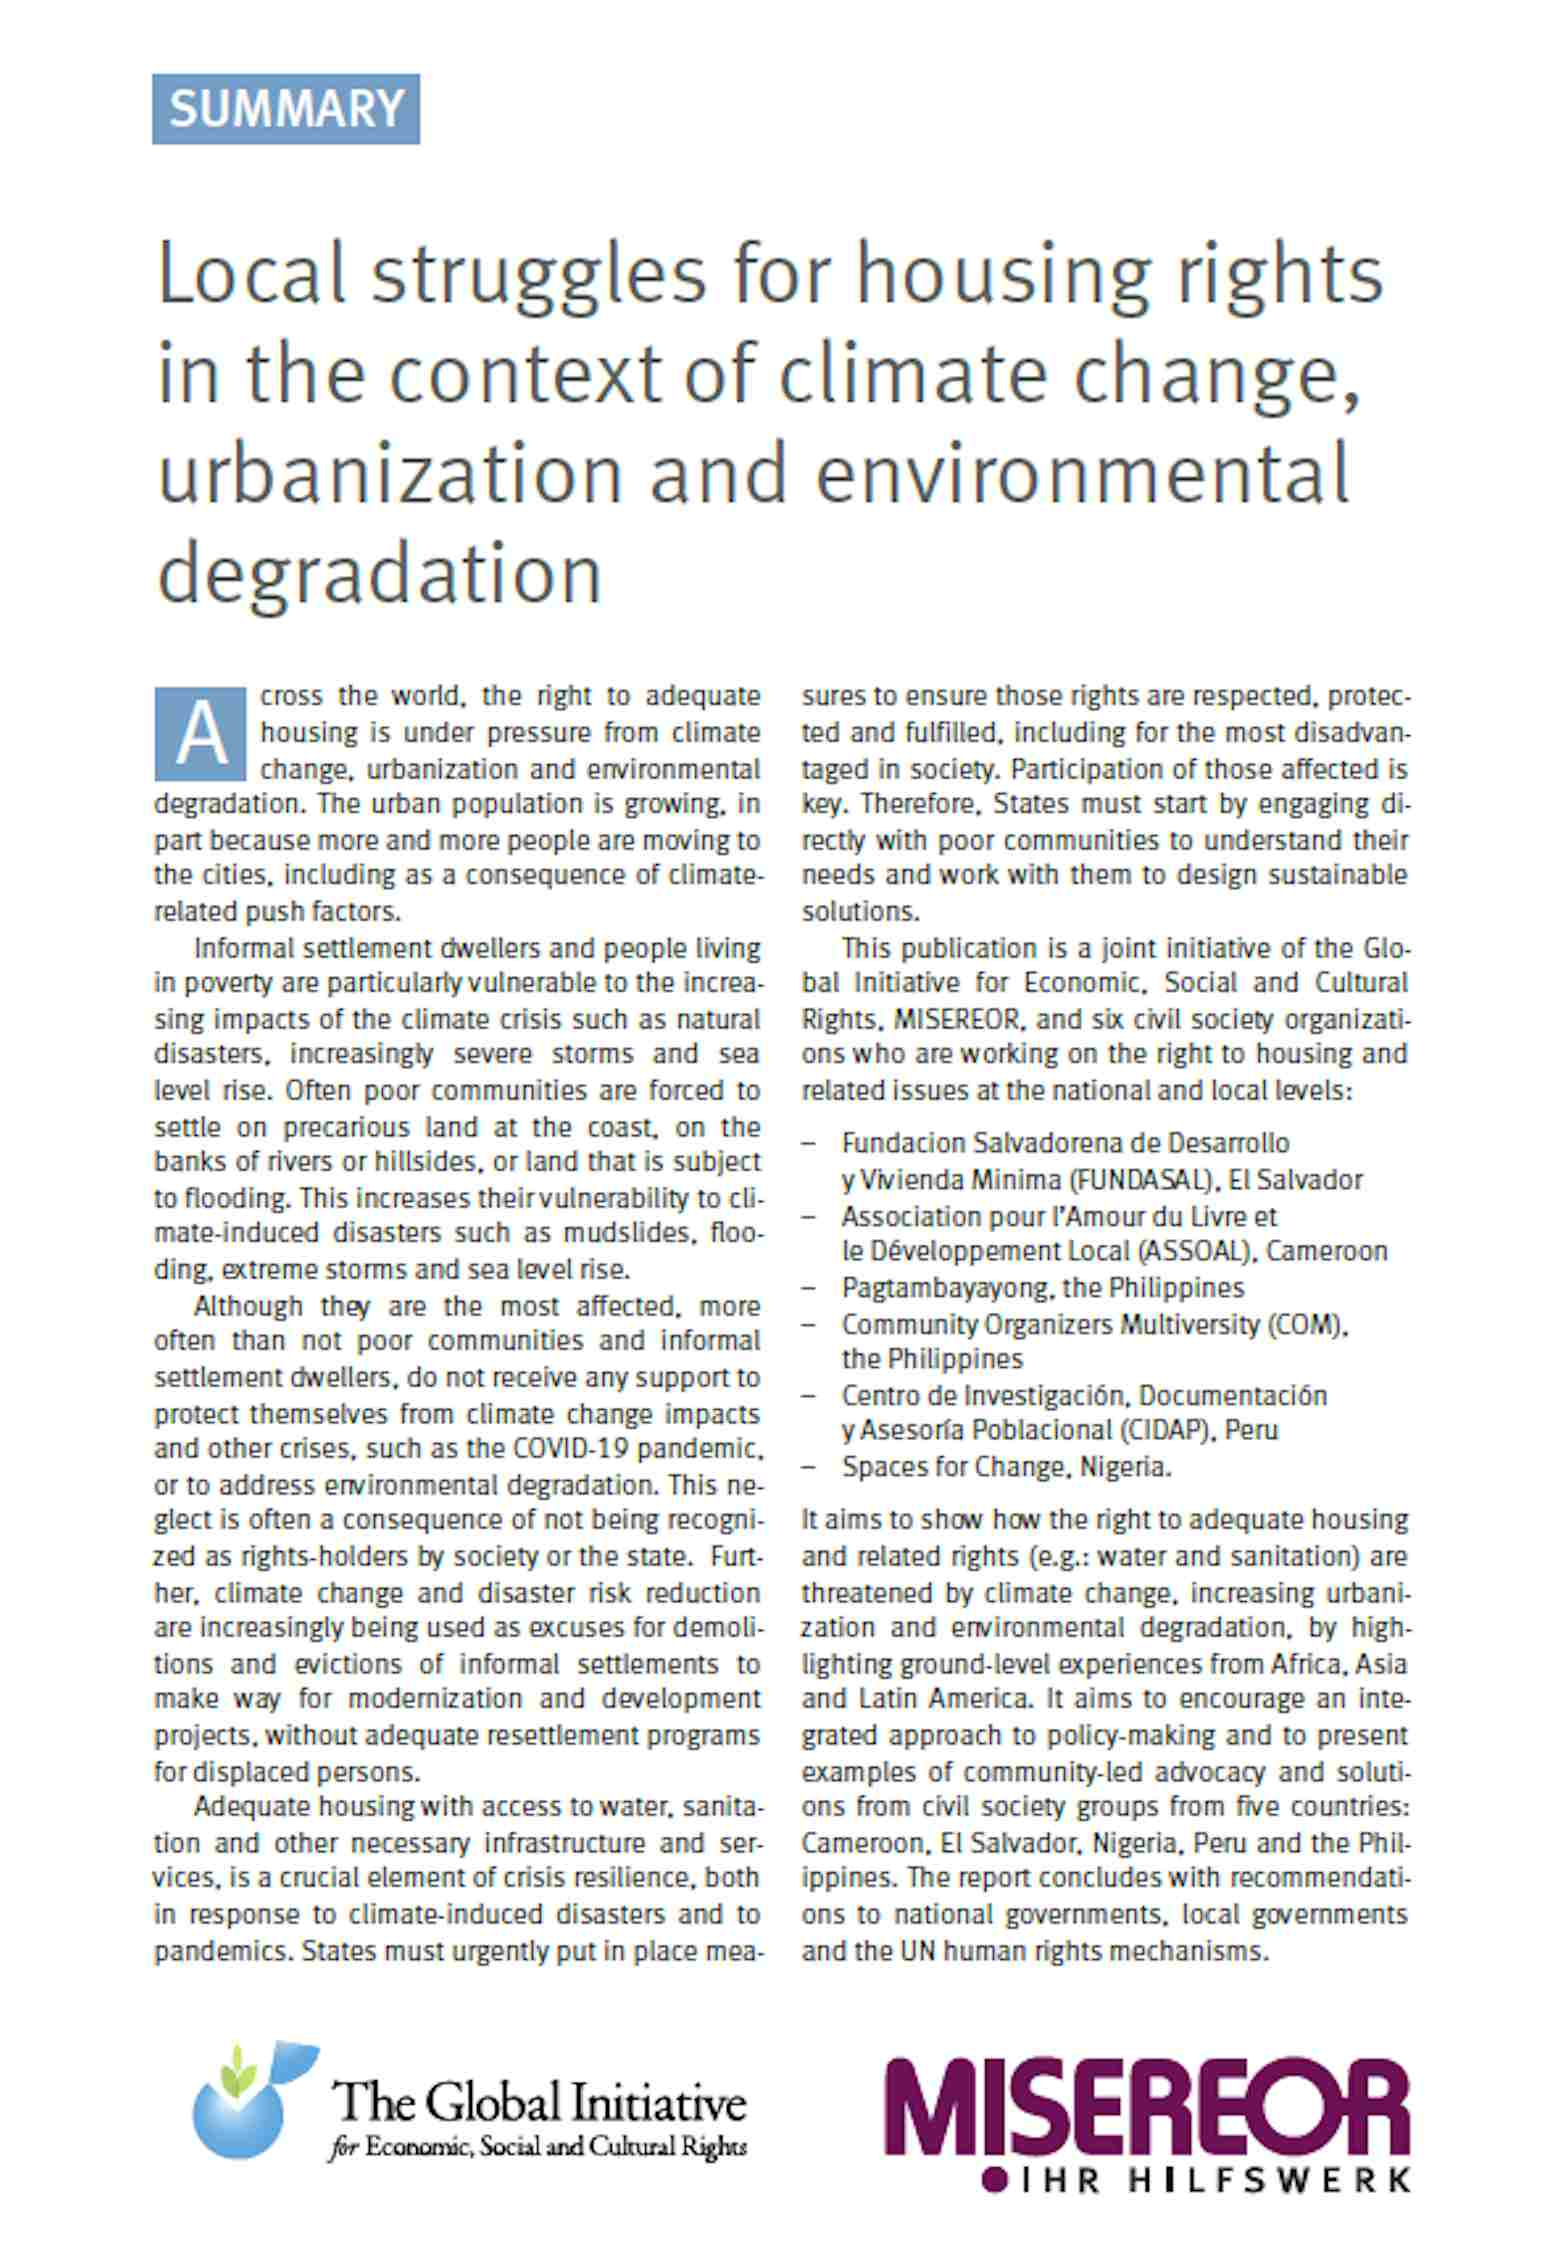 Local struggles for housing rights in the context of climate change, urbanization and environmental degradation – Summary